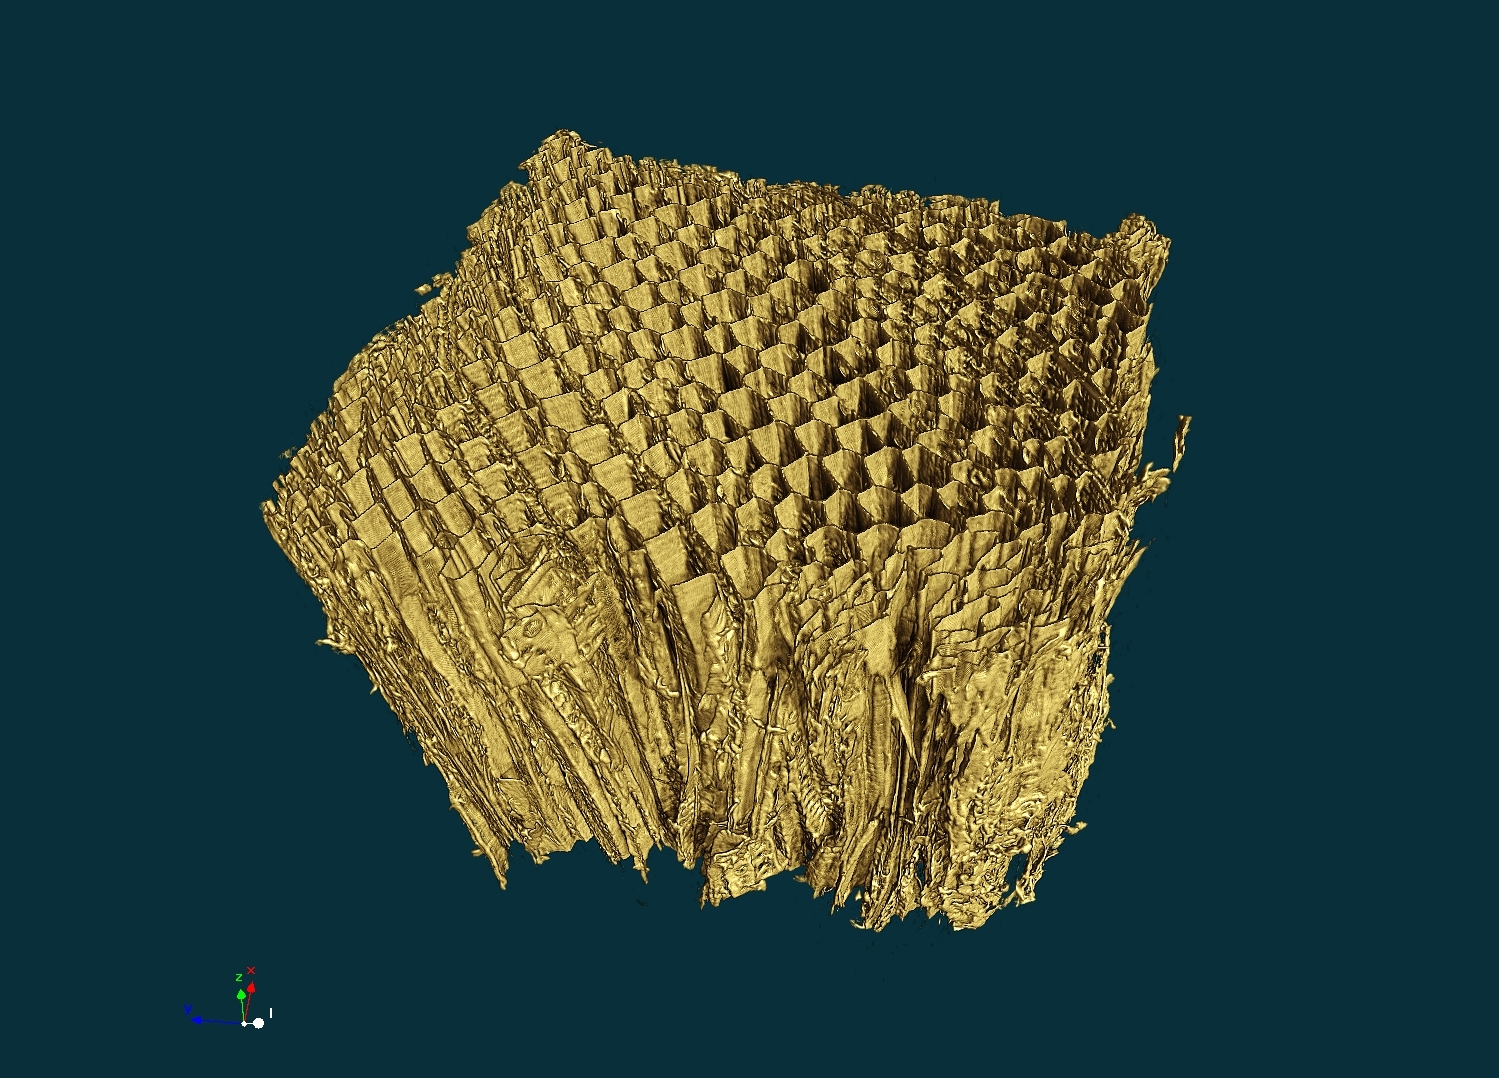 https://www.ximea.com/images/stories/wood-nano-ct-crop2.jpg